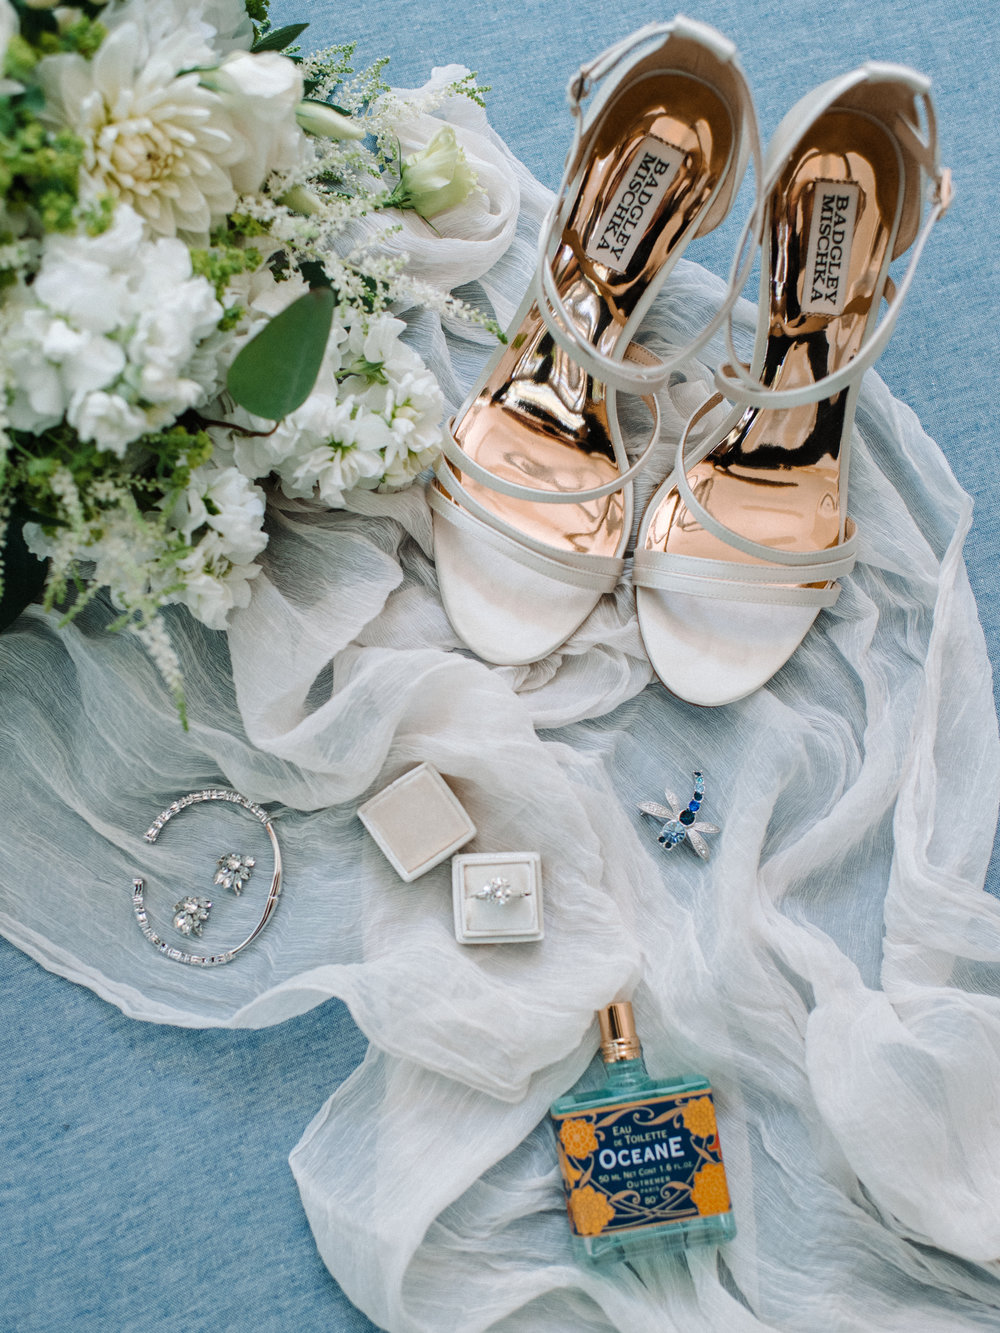 Myrtle Beach wedding details photographed by Pasha Belman Photography  //  A Lowcountry Wedding Magazine